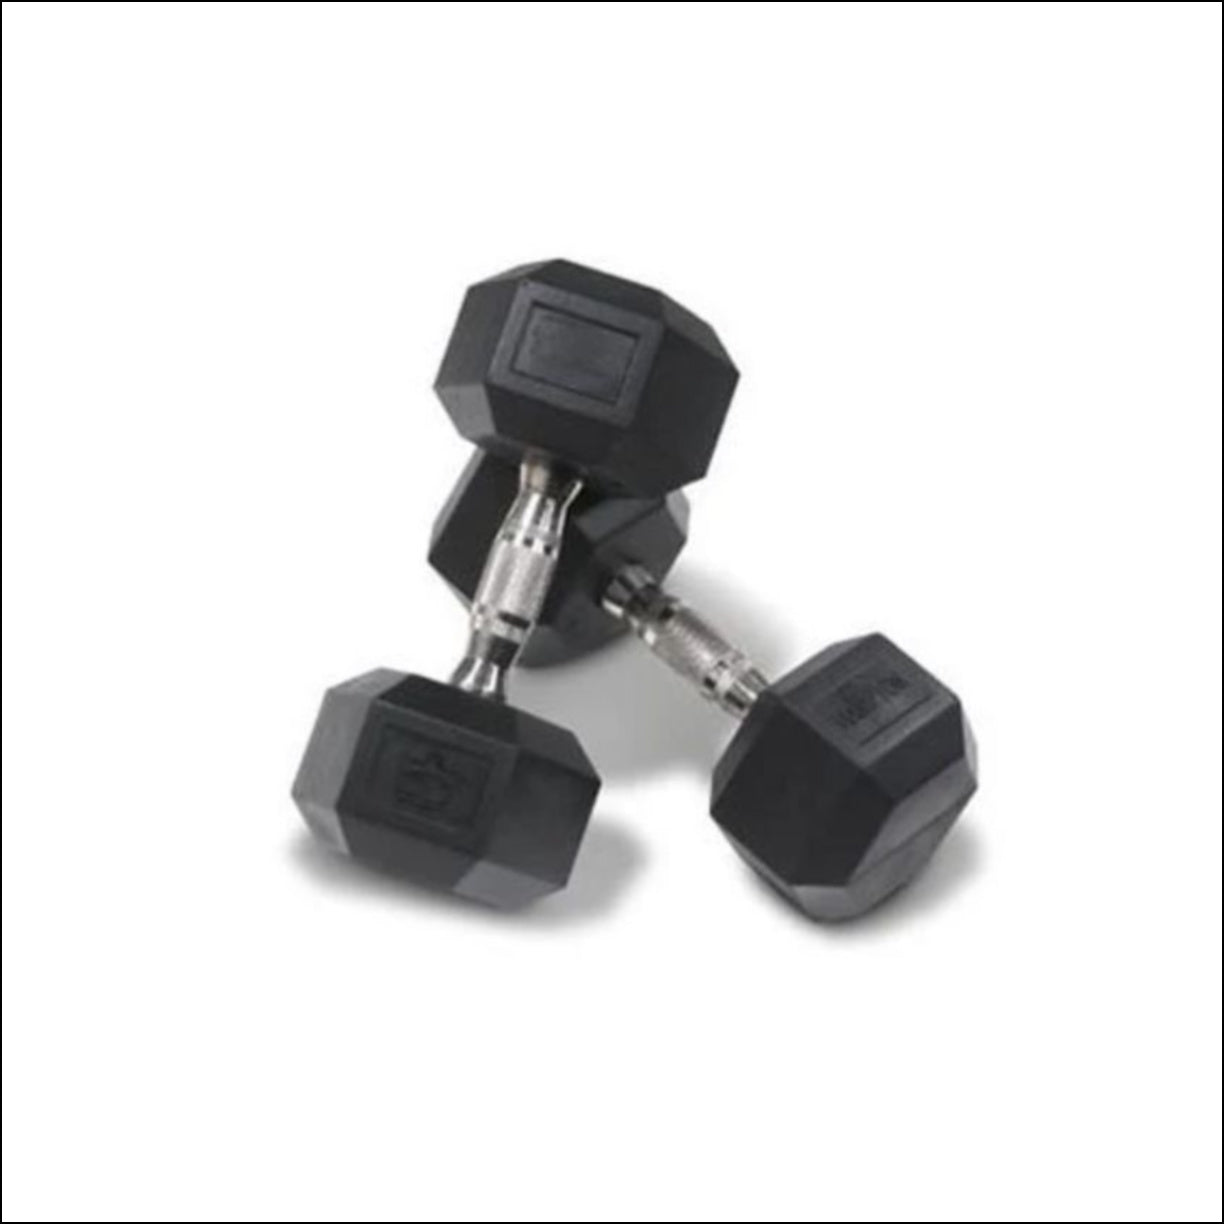 PAIR OF 30-KG RUBBER HEX DUMBBELLS  Muscle Motion Rubber coated hexagonal dumbbells with ergonomic handles are designed for increased comfort and improved durability. Rubber coating reduces noise improves life cycle of the product  (other finishes such as chrome and cast iron are subject to chipping and rust). Rubber coated dumbbells are also kinder on floor surfaces. The hexagonal shaped ends are designed to prevent the dumbbell from rolling on the floor or dumbbell rack.